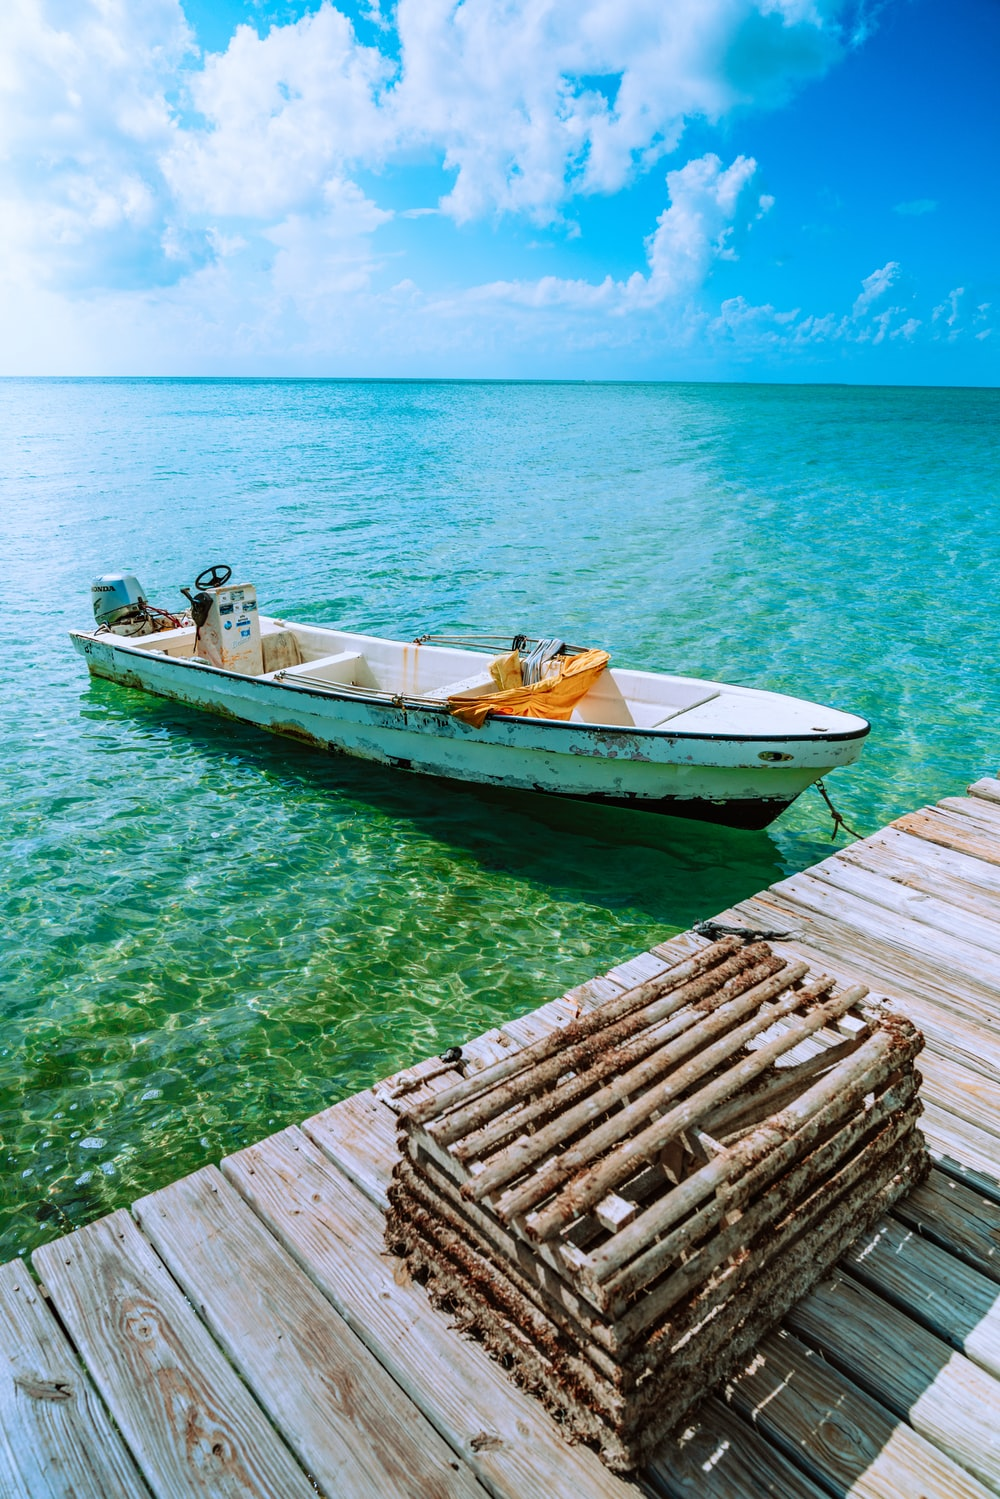 brown wooden boat on body of water during daytime